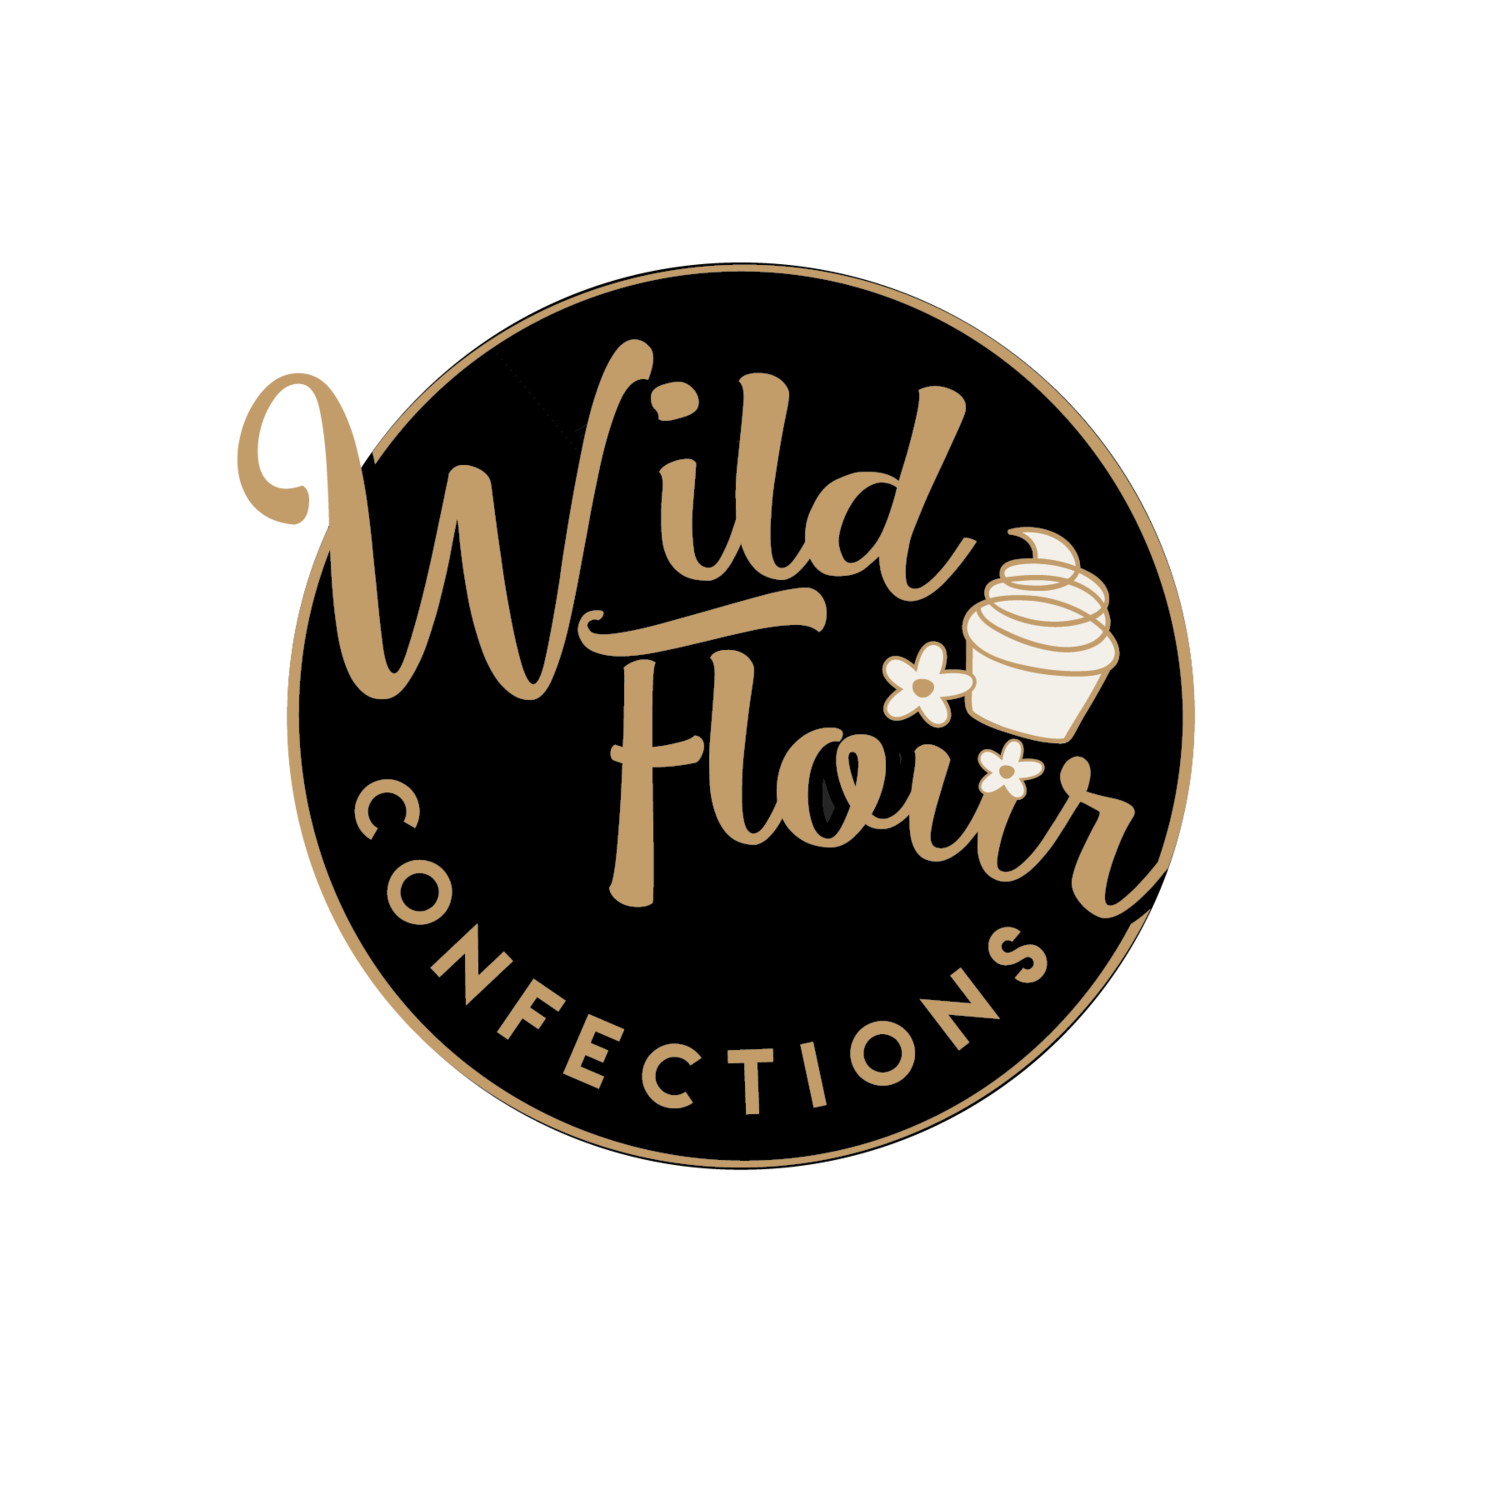 Wild Flour Confections